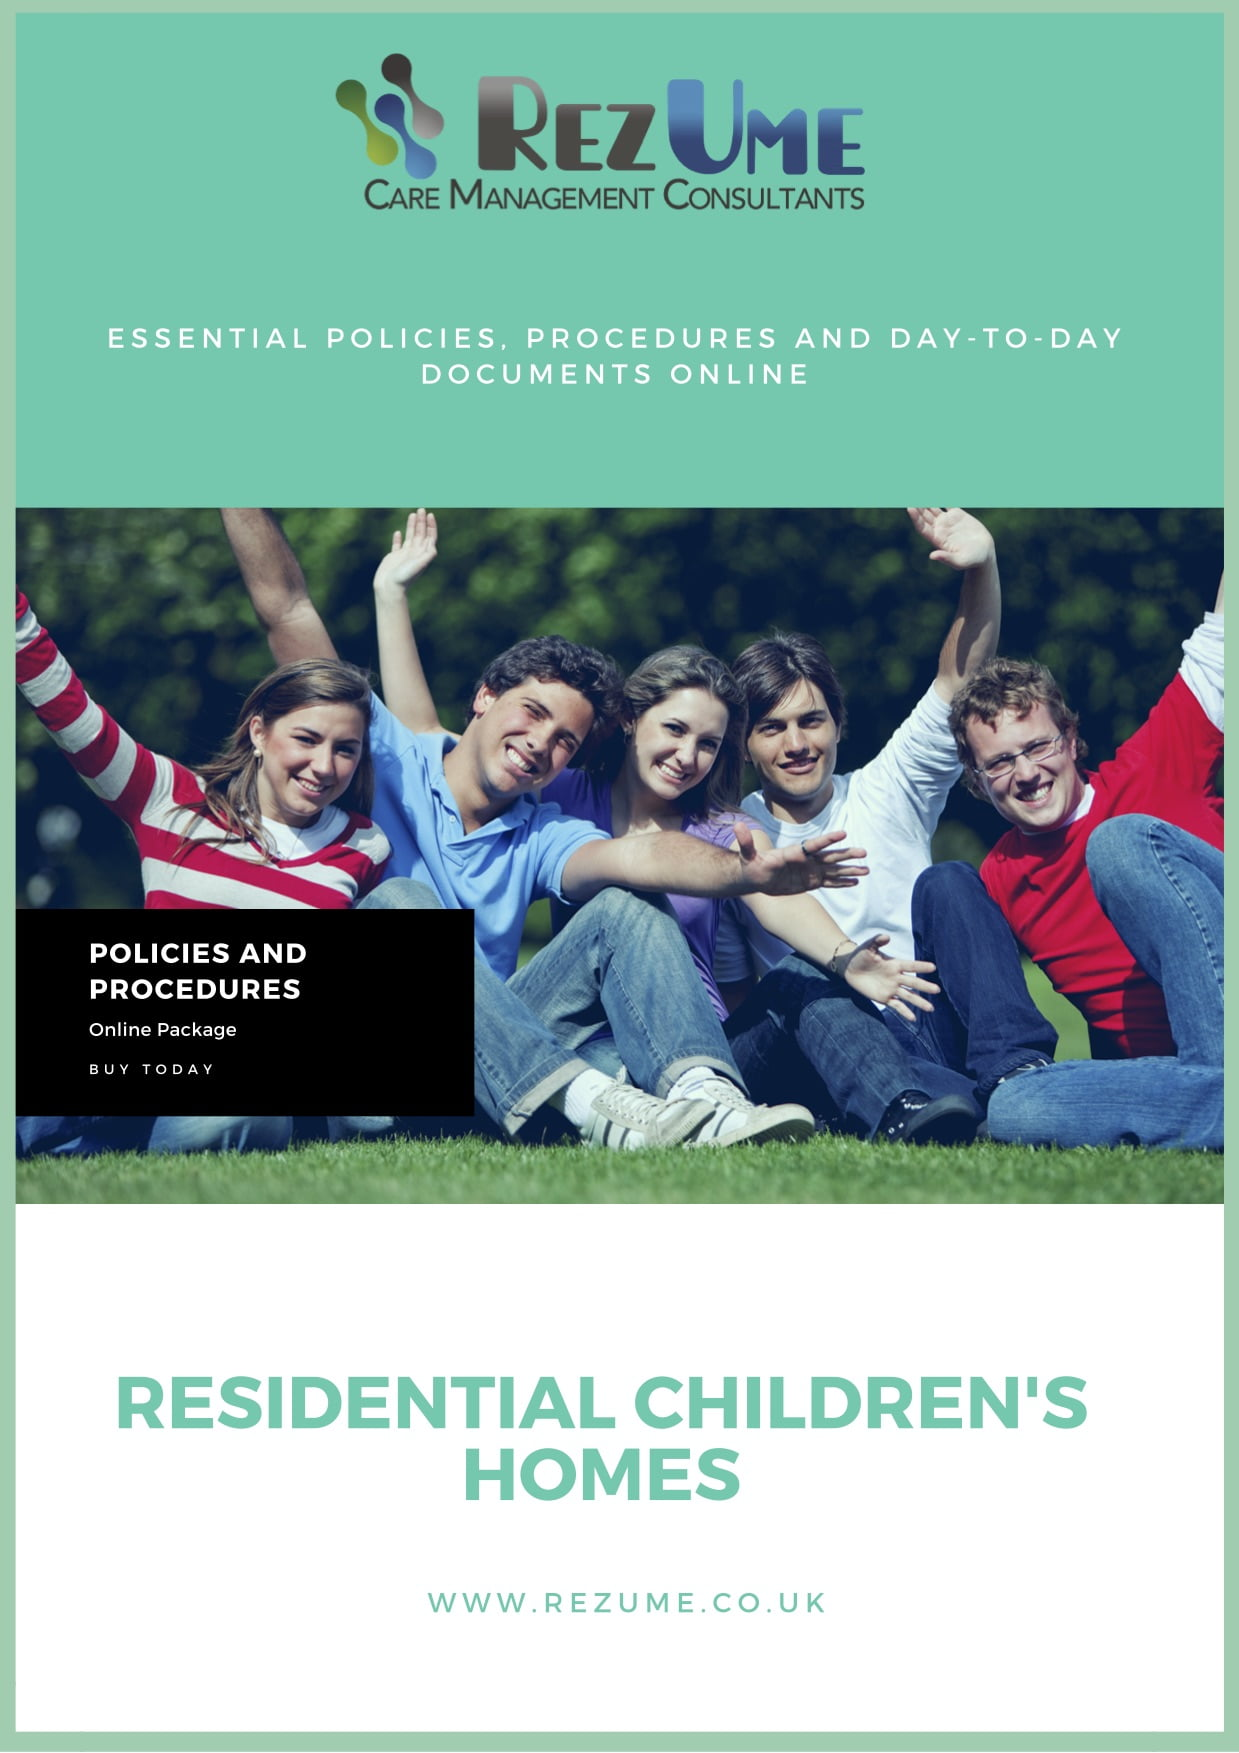 Policies and procedures manual for residential care homes